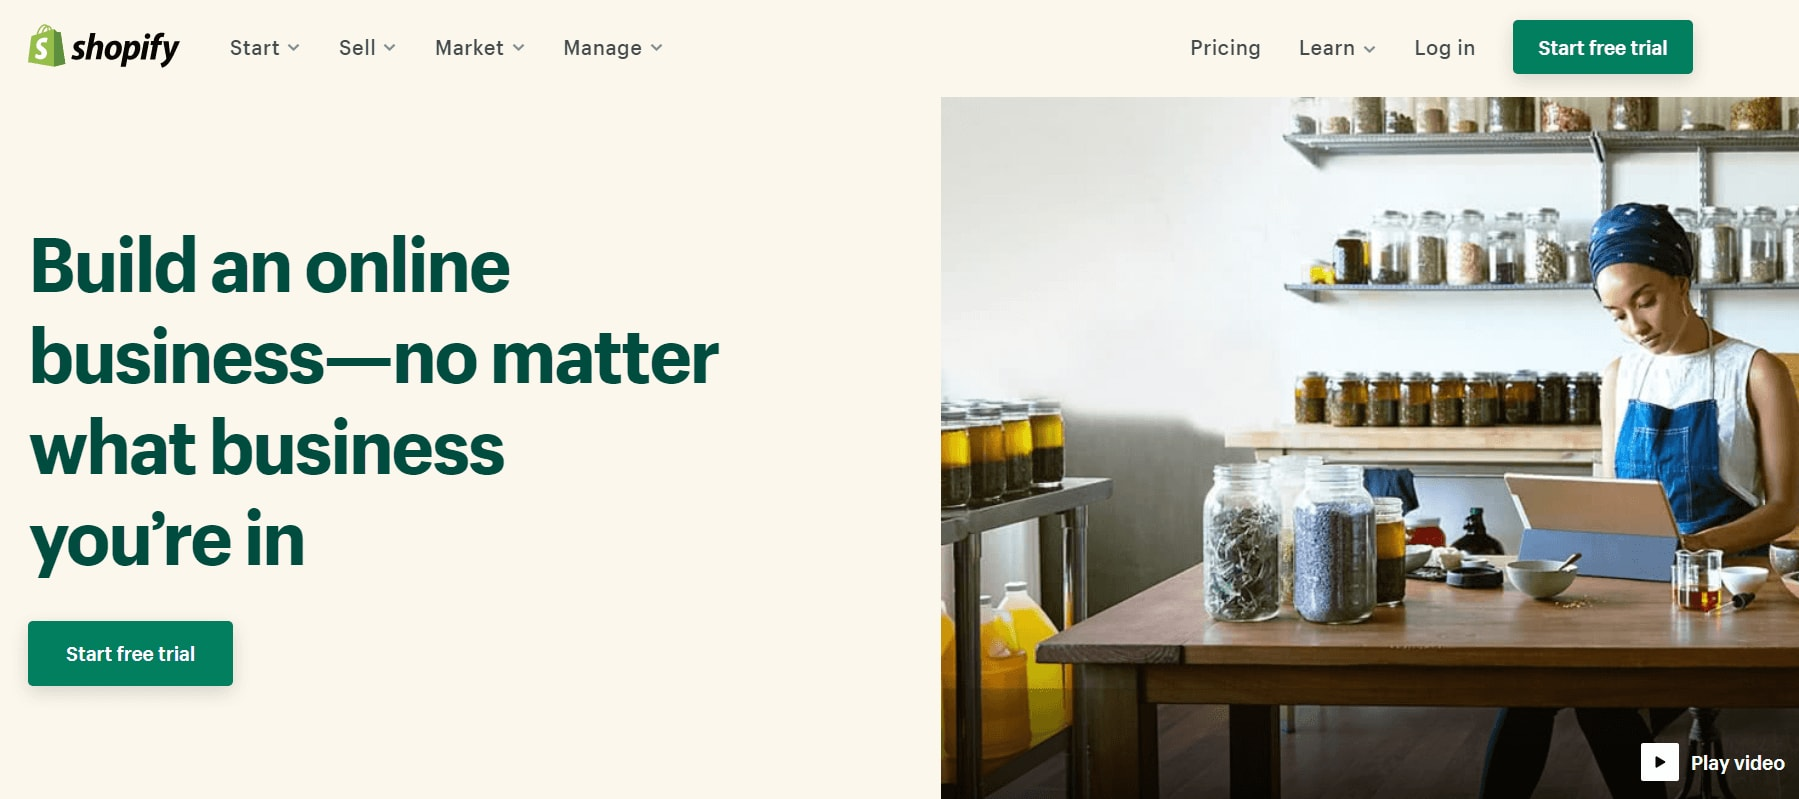 The homepage for Shopify, an eCommerce content management tool.